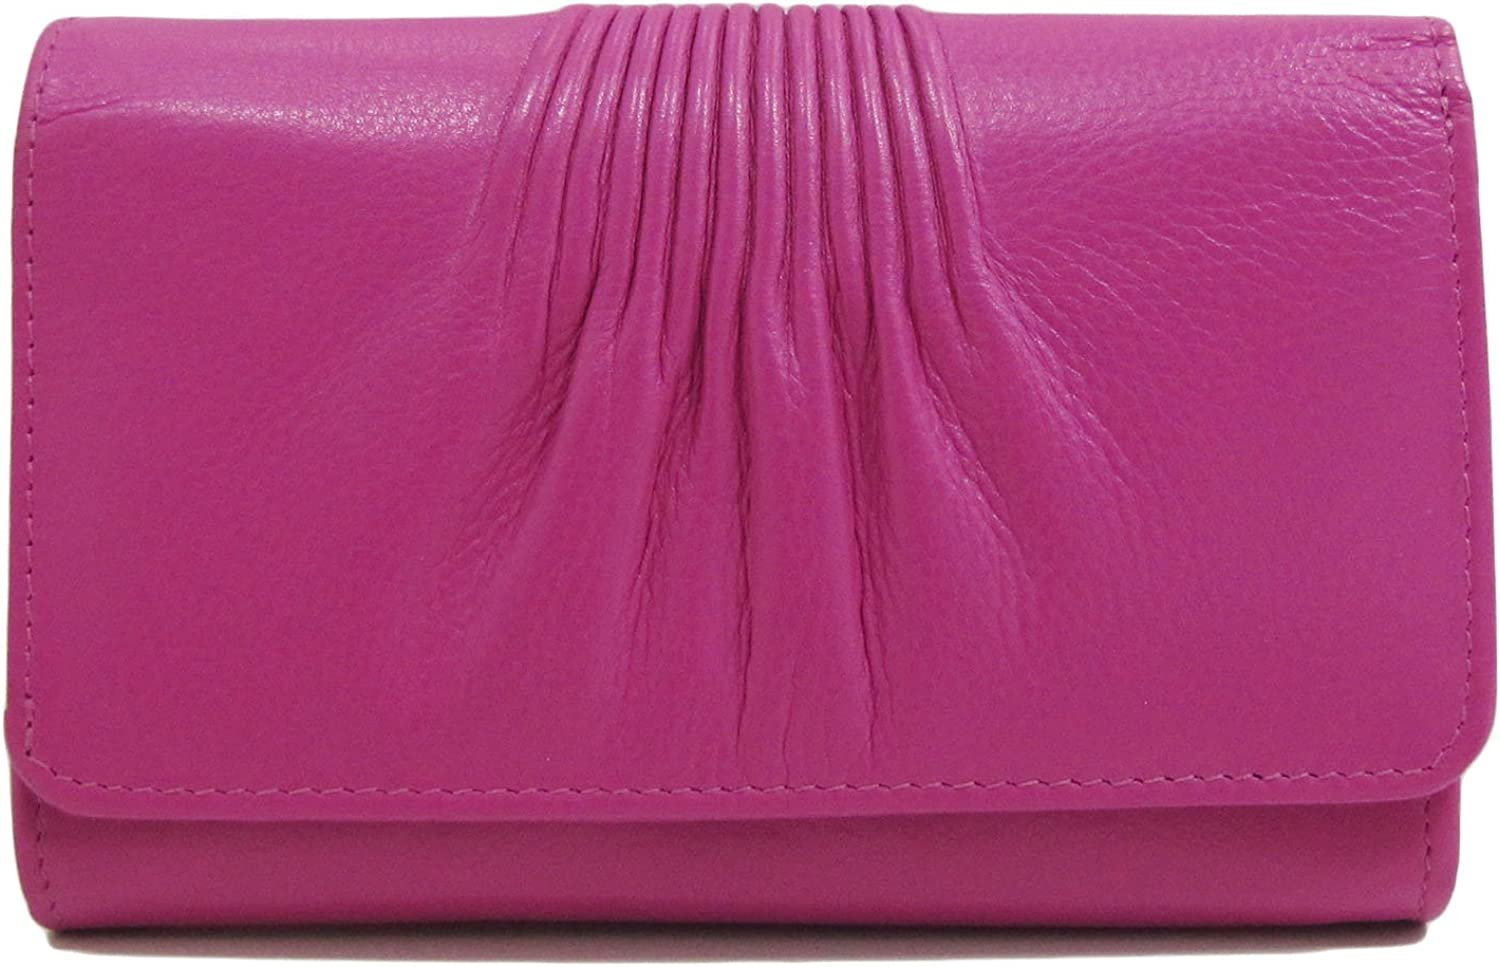 Ili Leather 6673 Wallet with RFID (Fabulous Fuchsia)